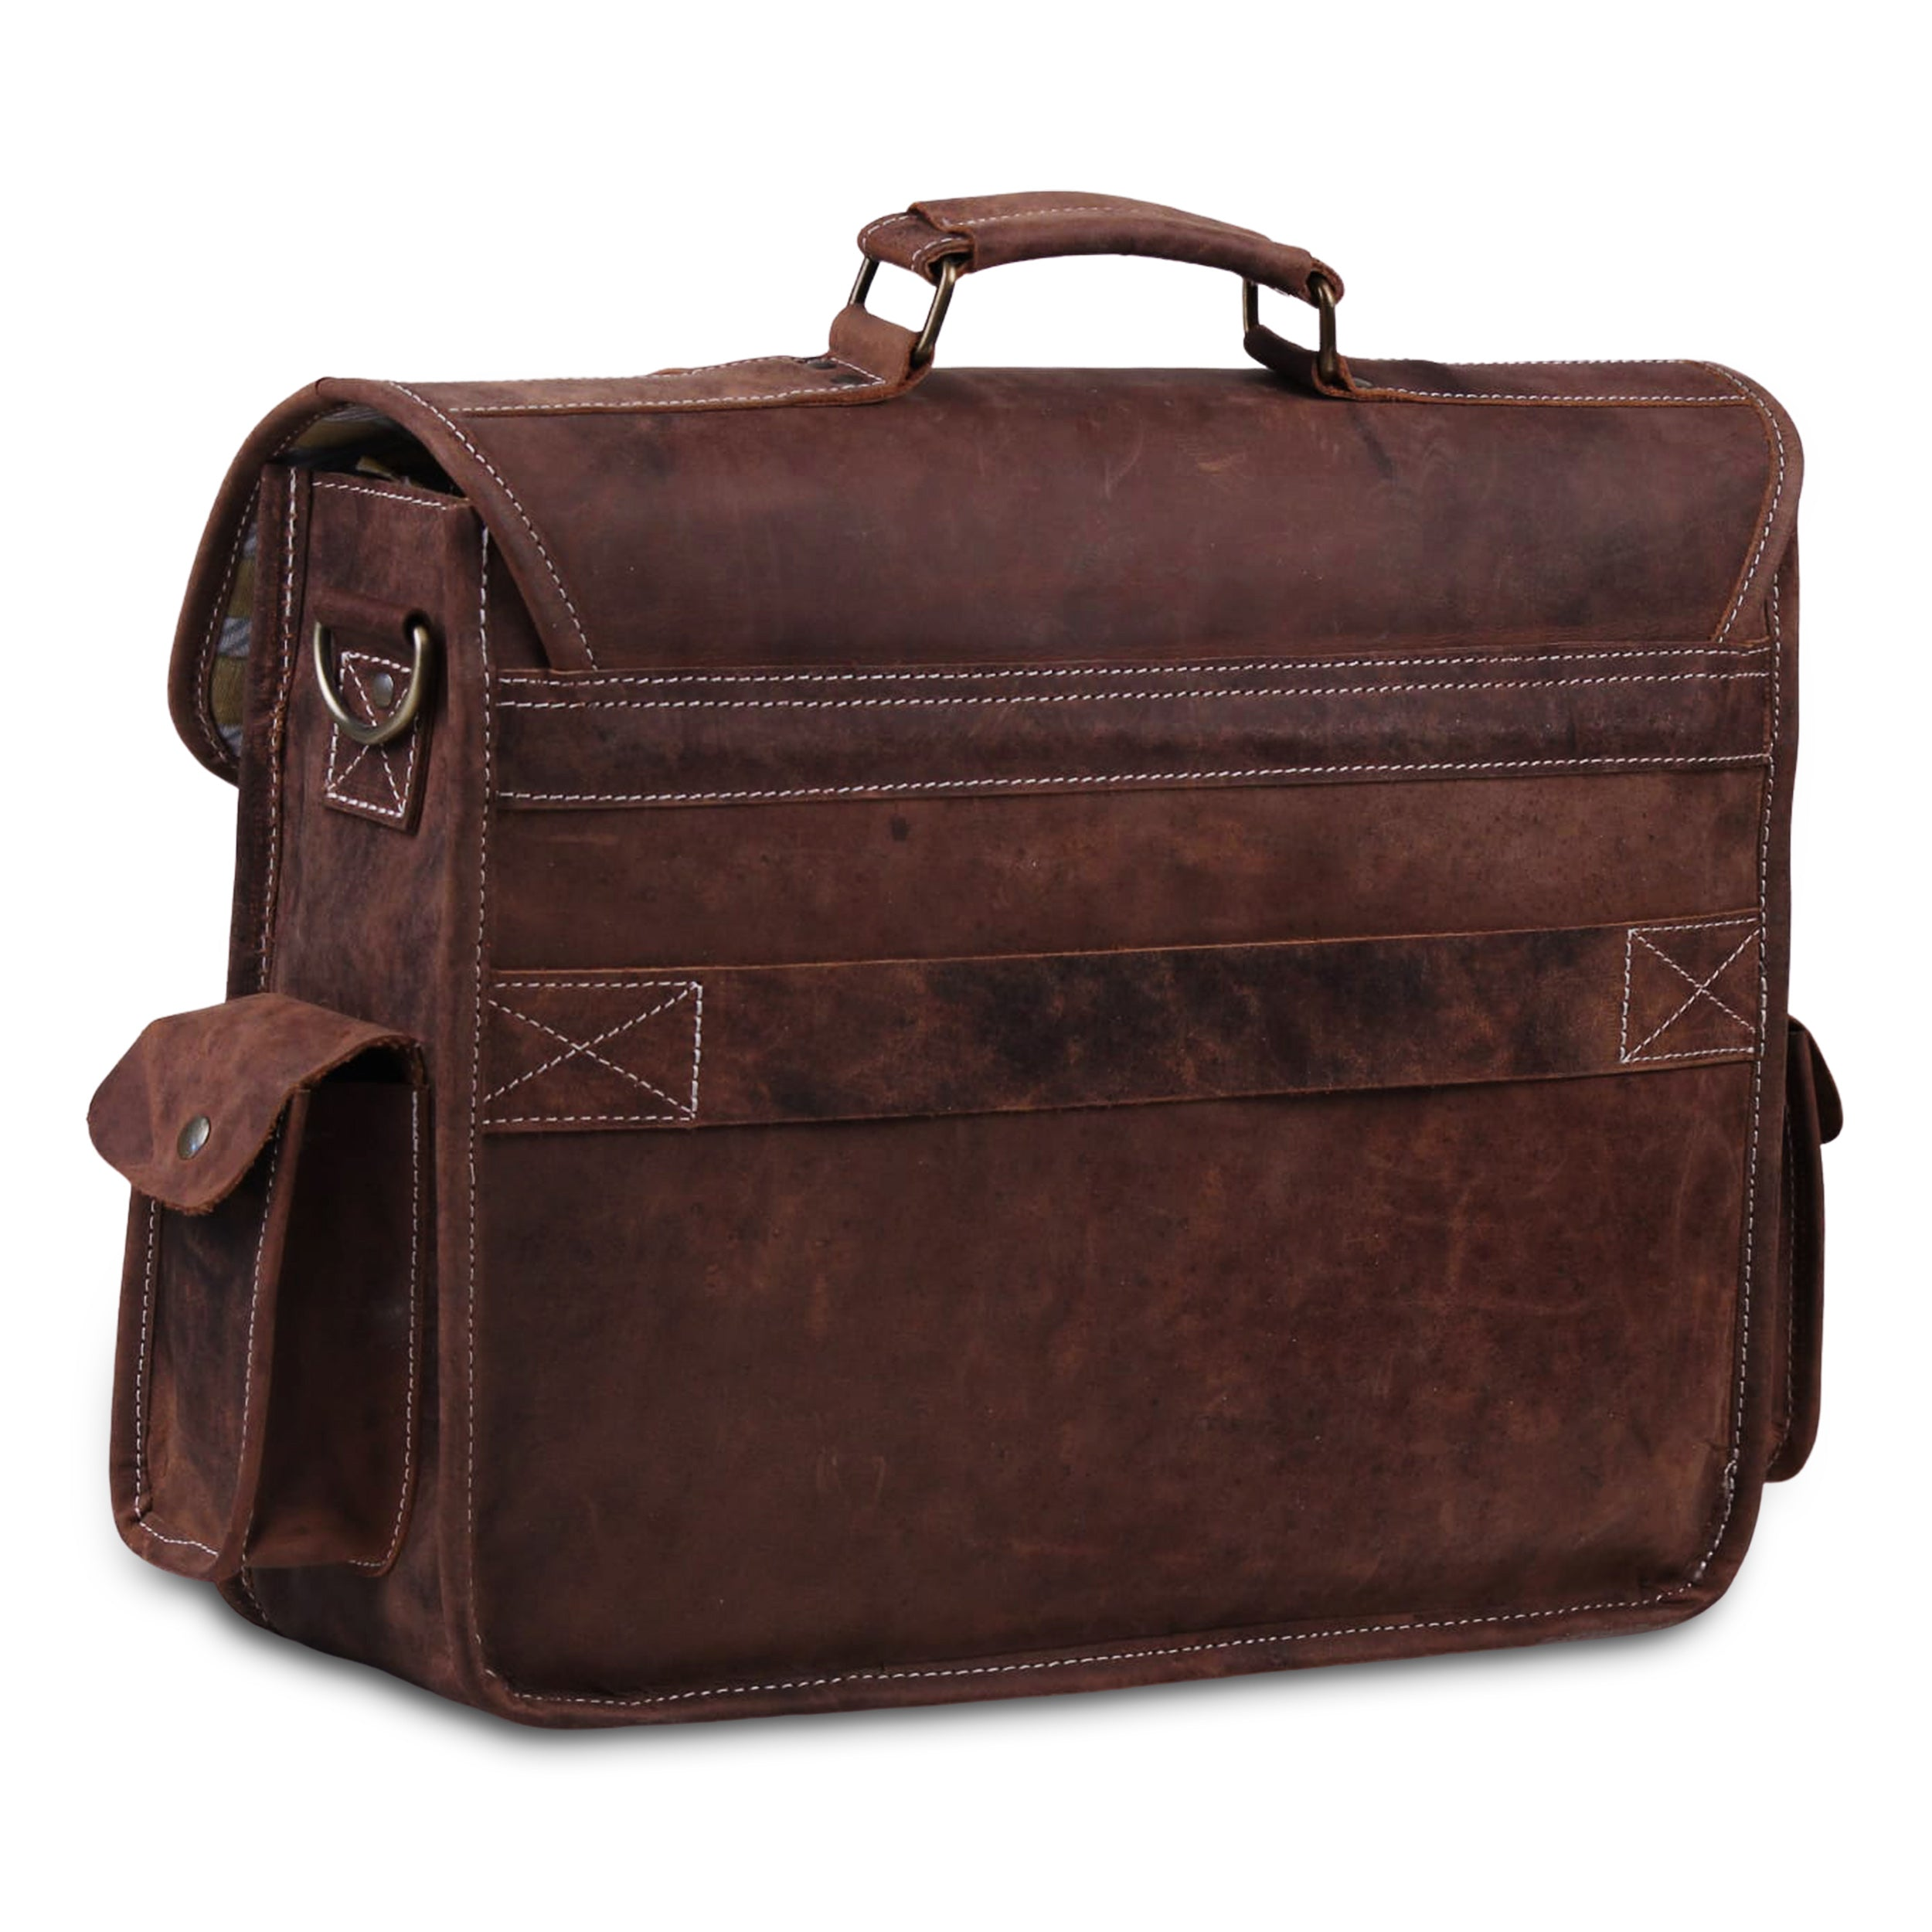 Genuine Full Grain Brown Leather 16 inch Large Briefcase Laptop bag by Hulsh